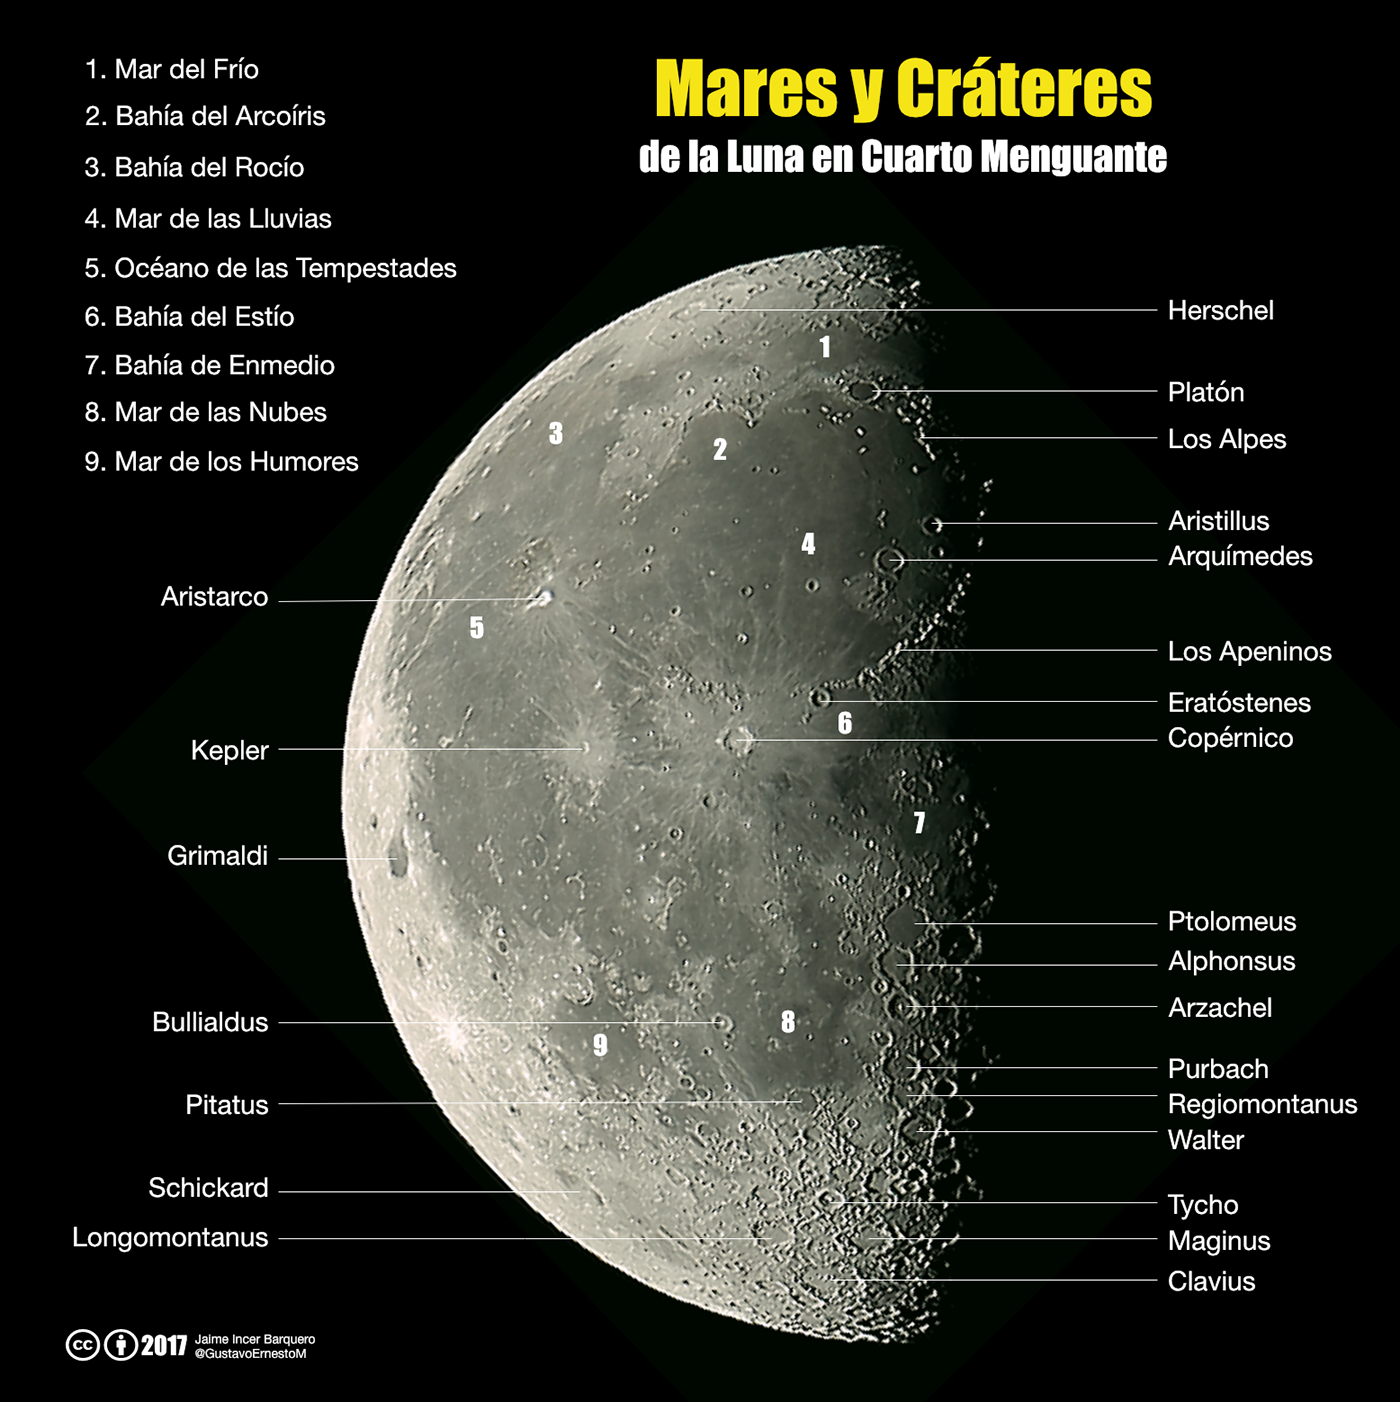 Luna Cuarto Menguante | Mares Y Crateres De La Luna En Cuarto Menguante On Behance